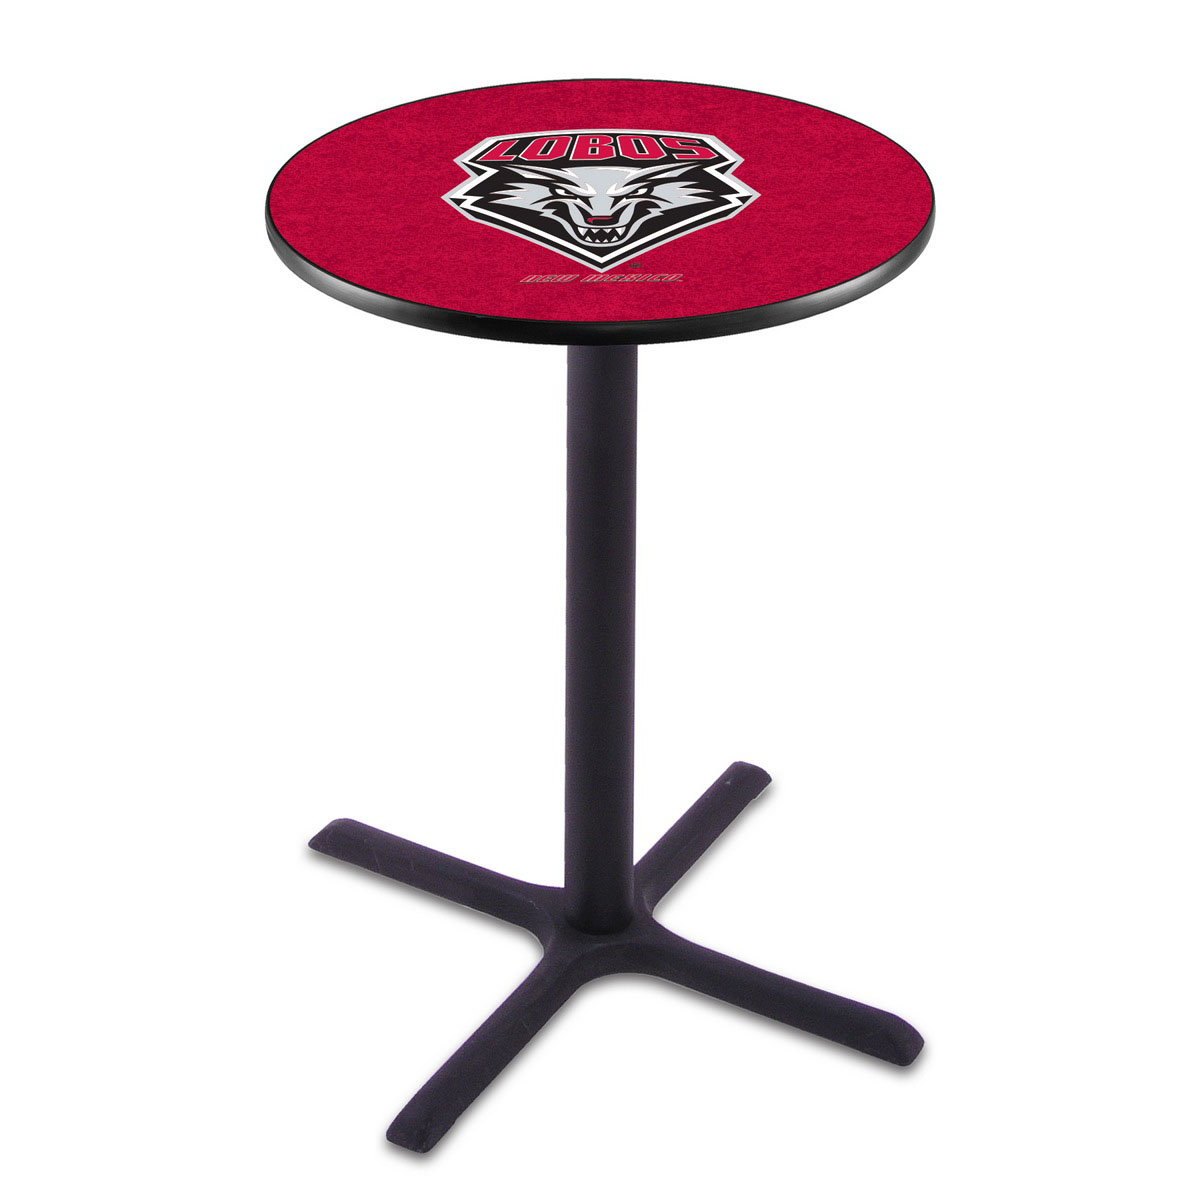 New New Mexico Wrinkle Pub Table Product Photo